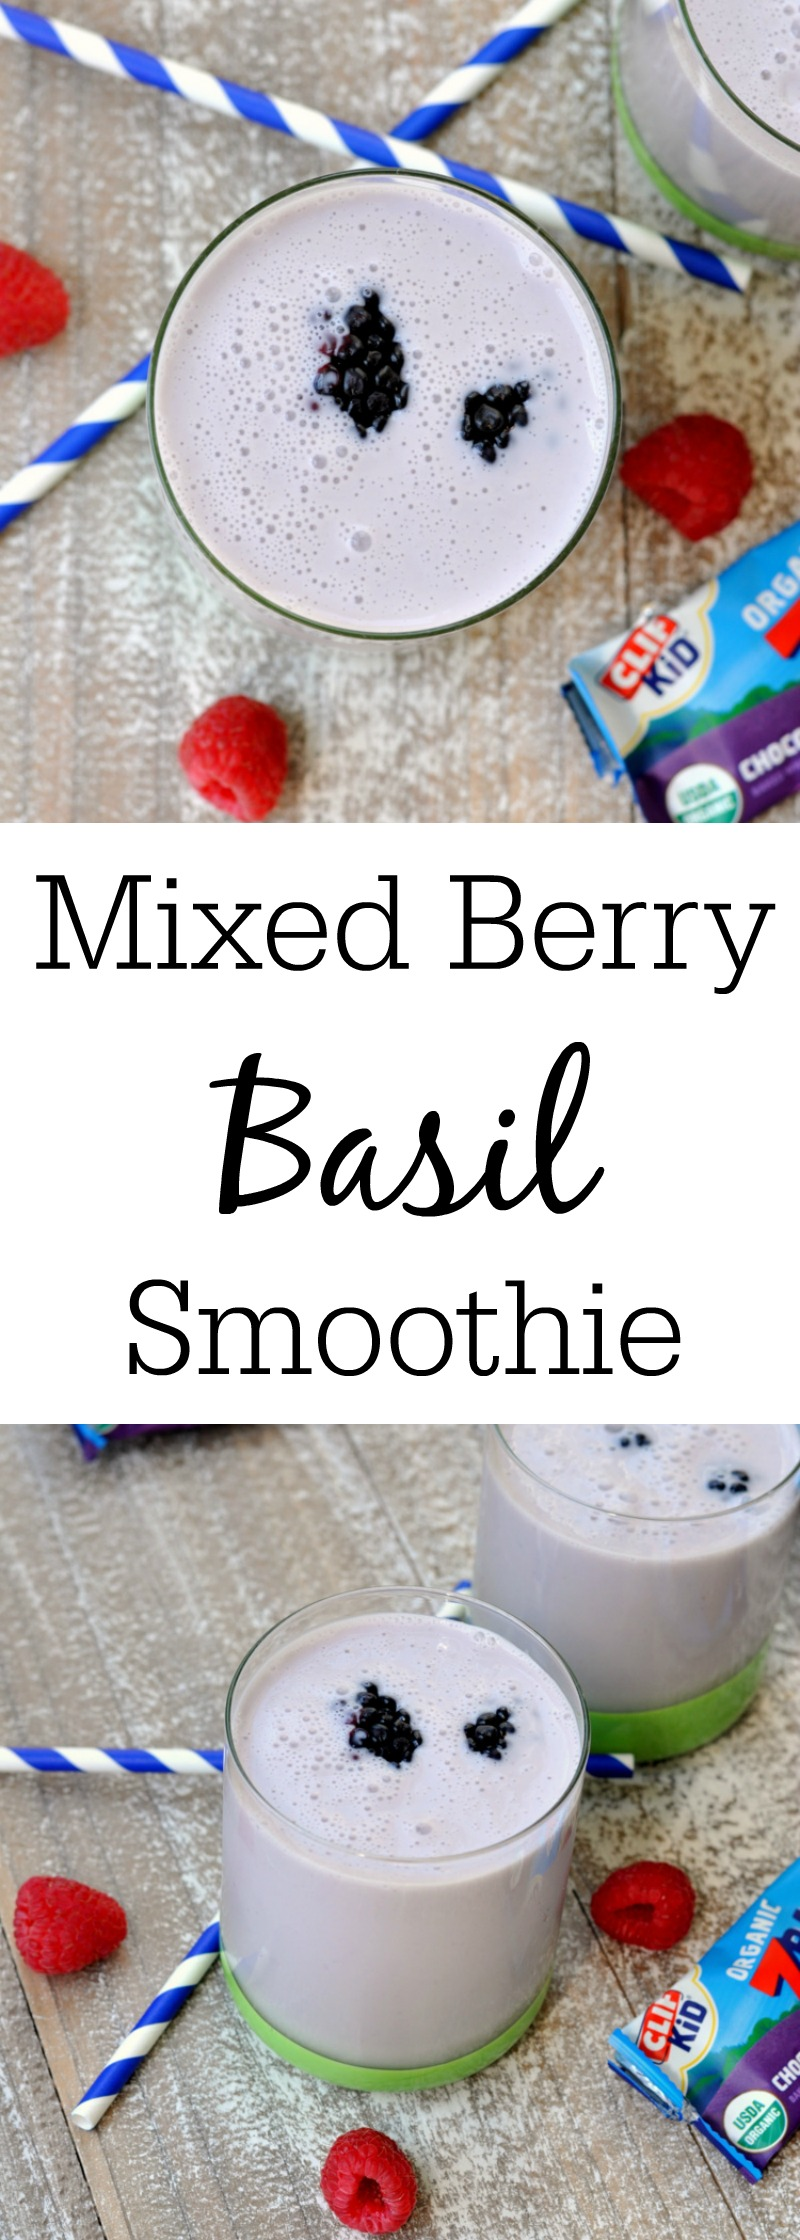 Mixed Berry Basil Smoothie